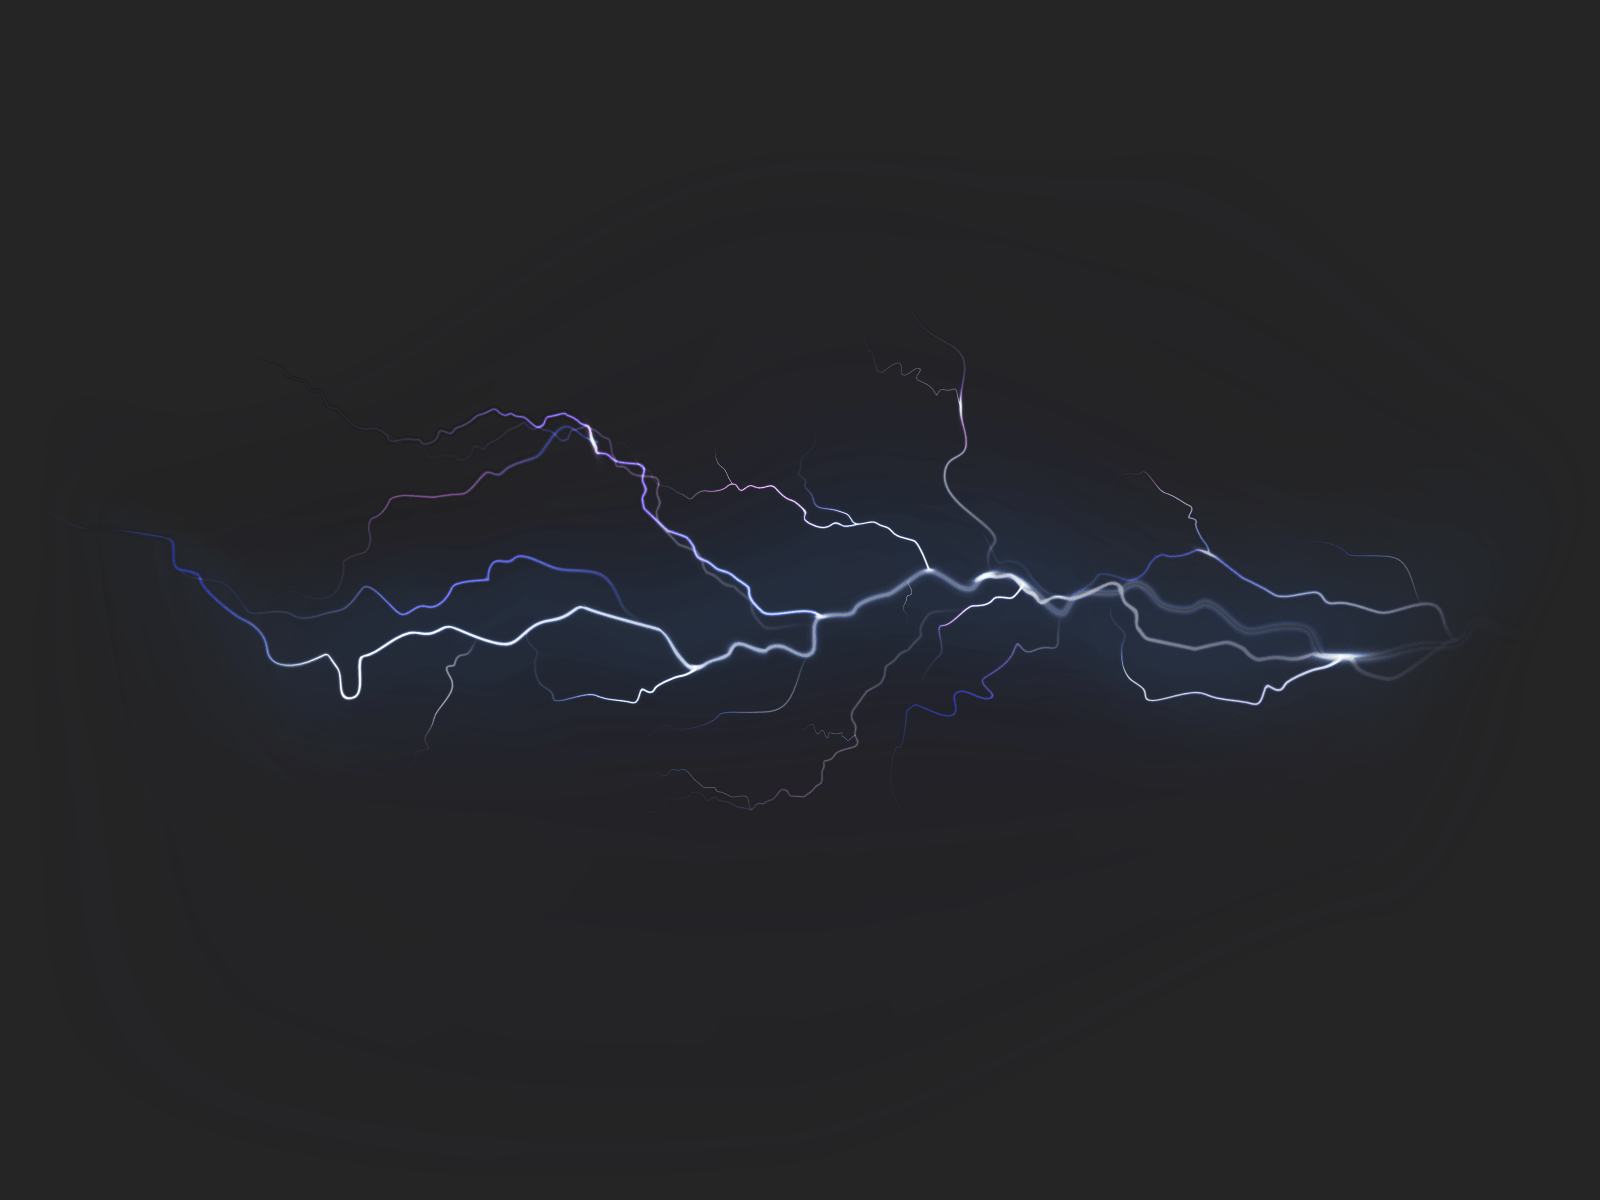 Picture of lightning.